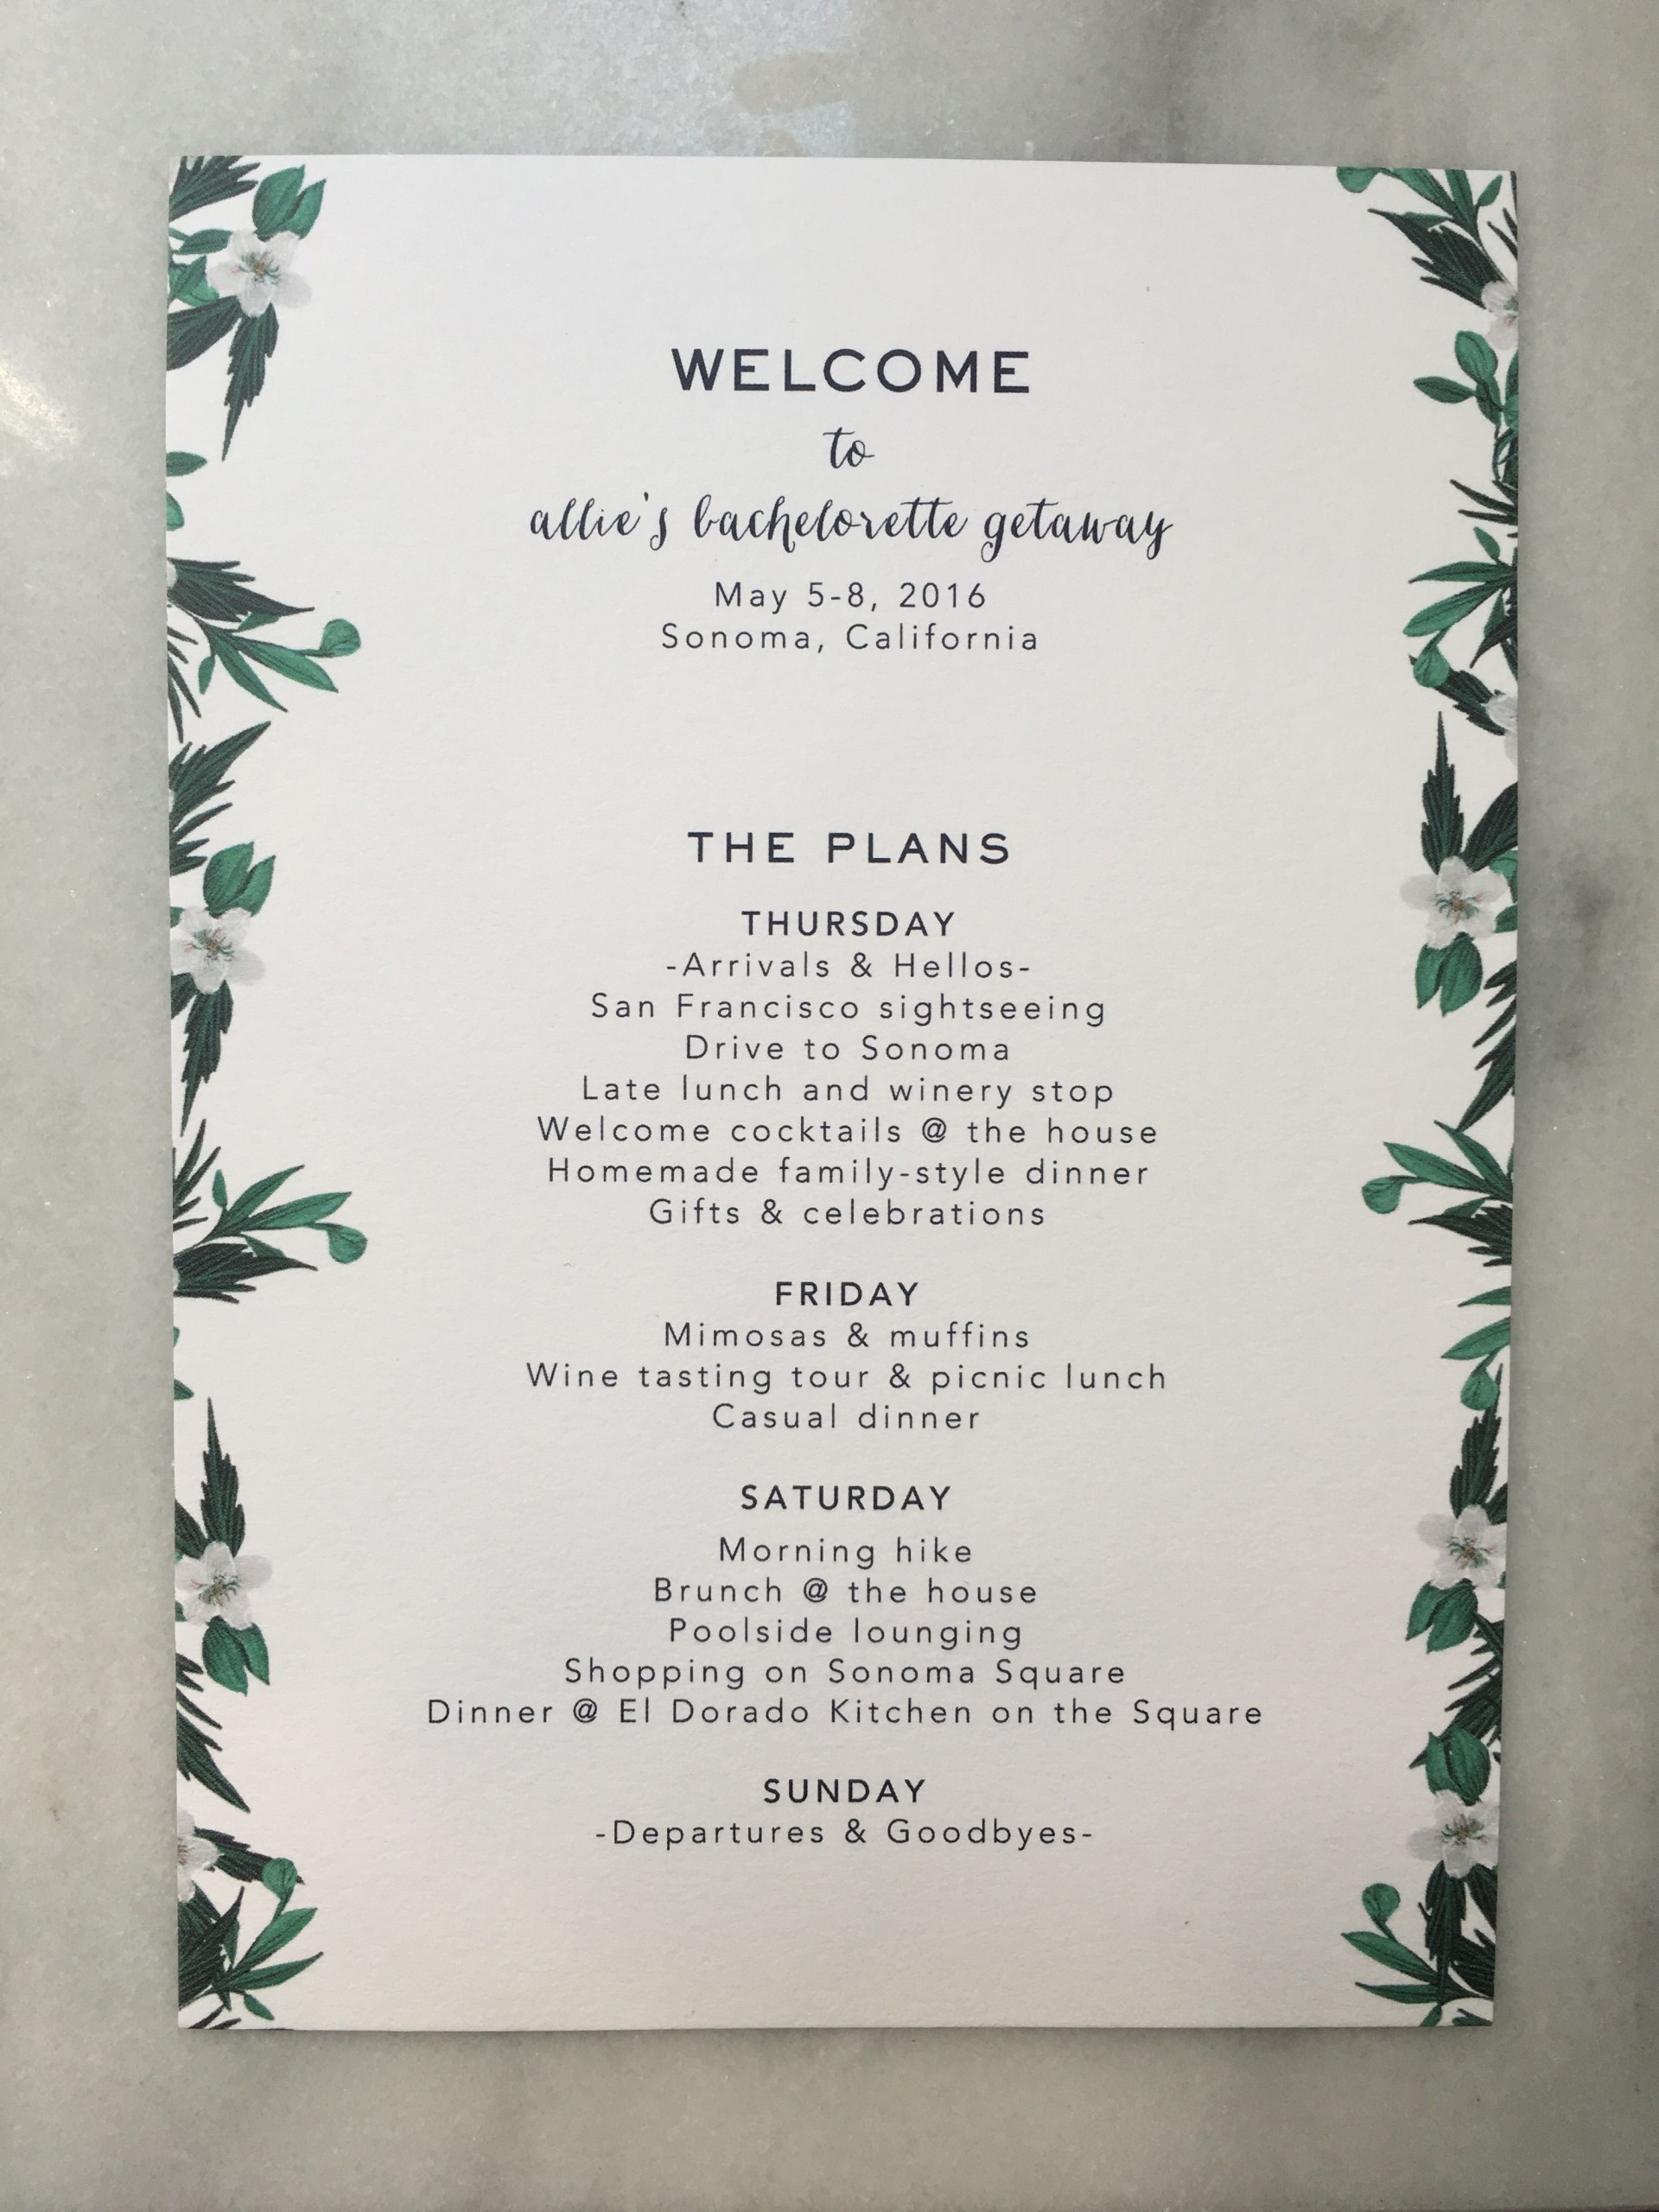 000 Impressive Bachelorette Itinerary Template Free Highest Quality  Party Editable Download1920